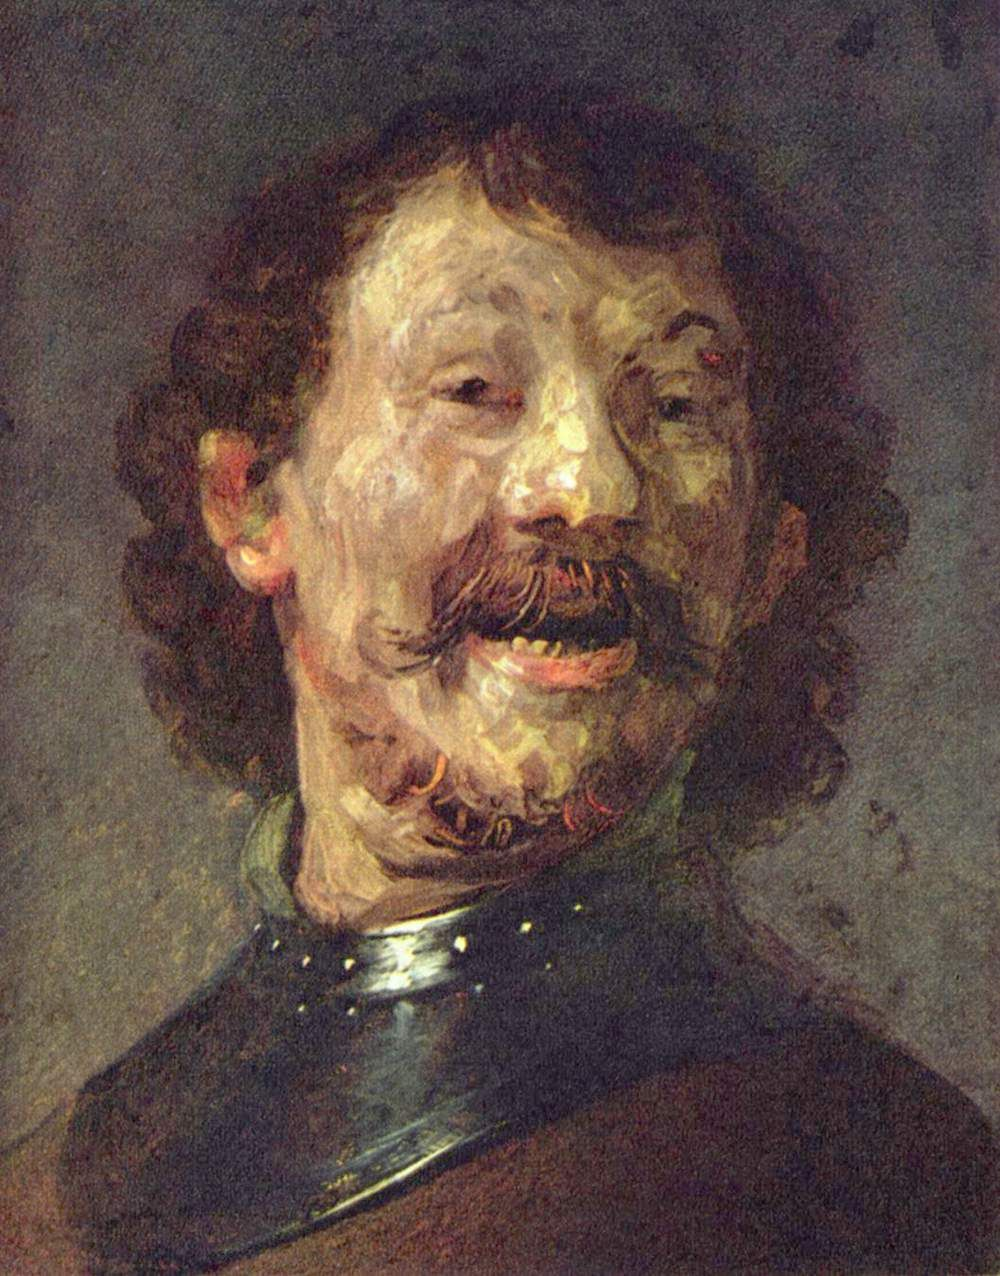 Rembrandt S Early Portrait Of A Laughing Man From The Mauritshuis Rembrandt Maan Schilderij Rembrandt Schilderijen